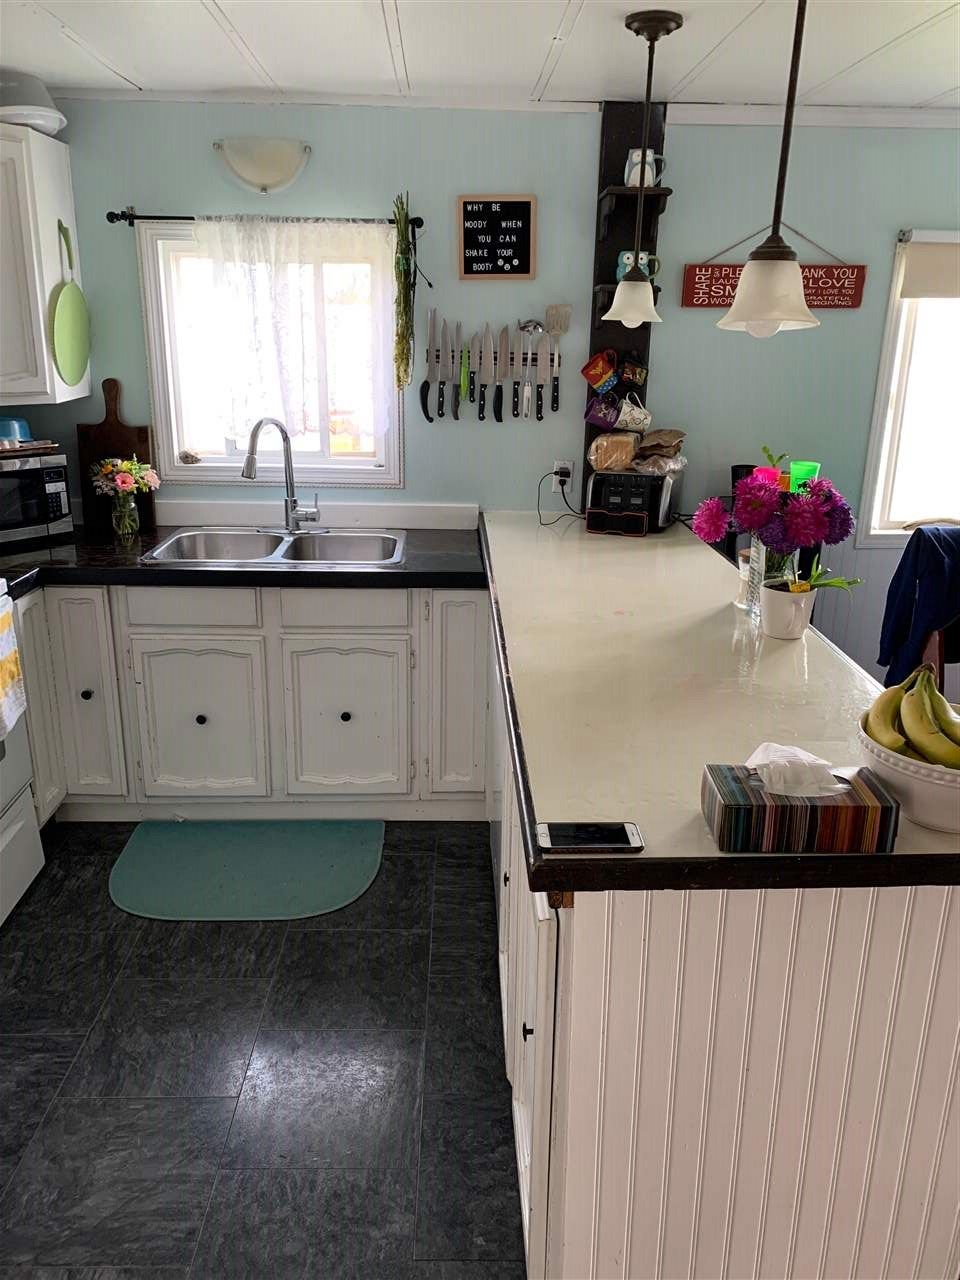 """Photo 4: Photos: 78 8420 ALASKA Road in Fort St. John: Fort St. John - City SE Manufactured Home for sale in """"PEACE COUNTRY"""" (Fort St. John (Zone 60))  : MLS®# R2495486"""